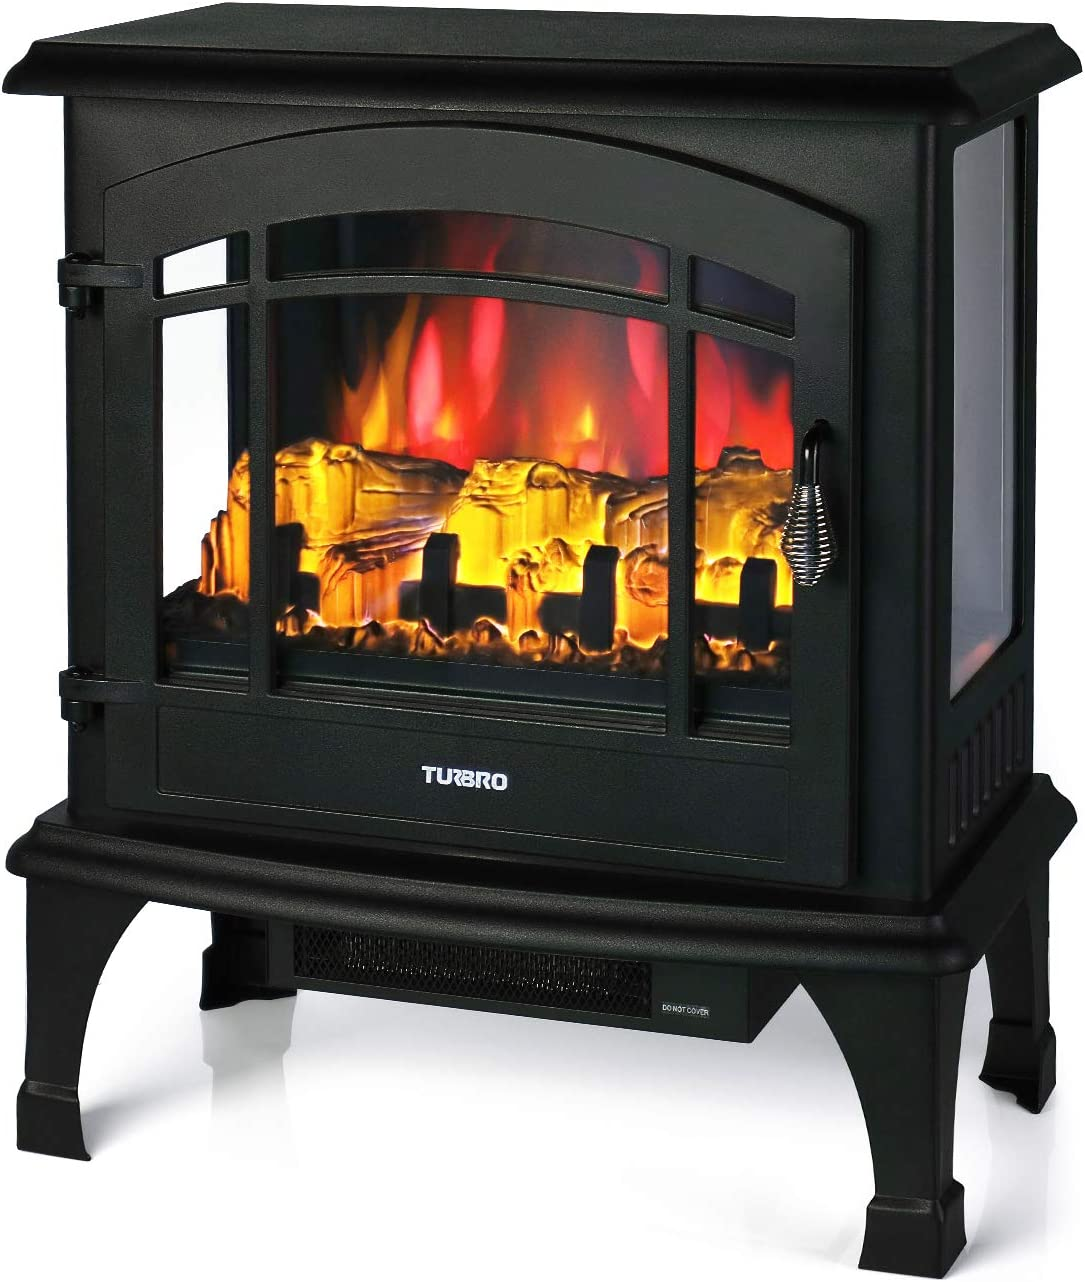 Timer 23 1400W Black TURBRO Suburbs TS23 Electric Fireplace Heater Remote Control Freestanding Fireplace Stove with Realistic Flame Brightness Adjustable Effect